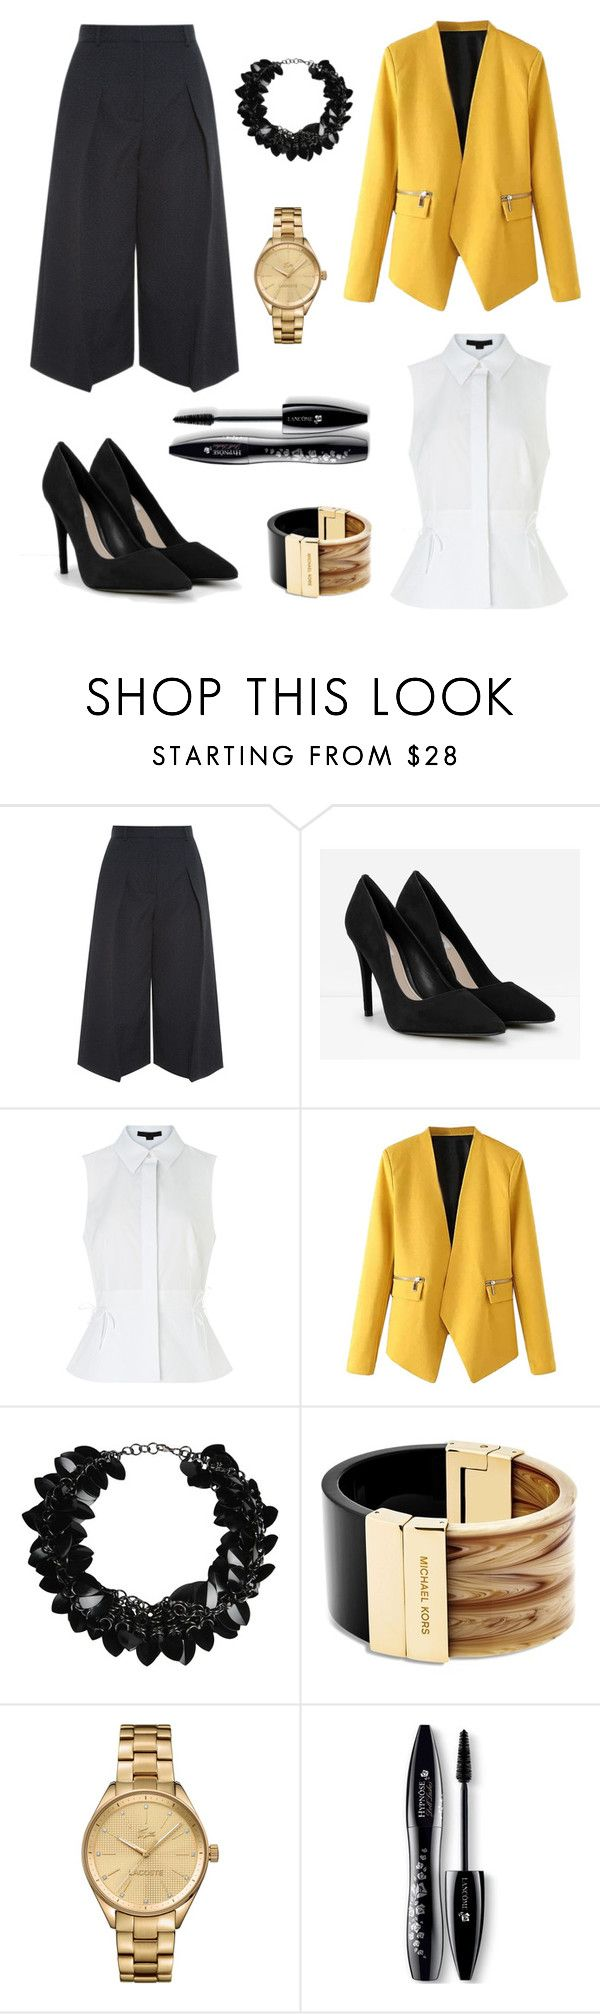 """Business woman ftw"" by shop-styleloft on Polyvore featuring Erdem, CHARLES & KEITH, Alexander Wang, WithChic, First People First, Michael Kors, Lacoste and Lancôme"